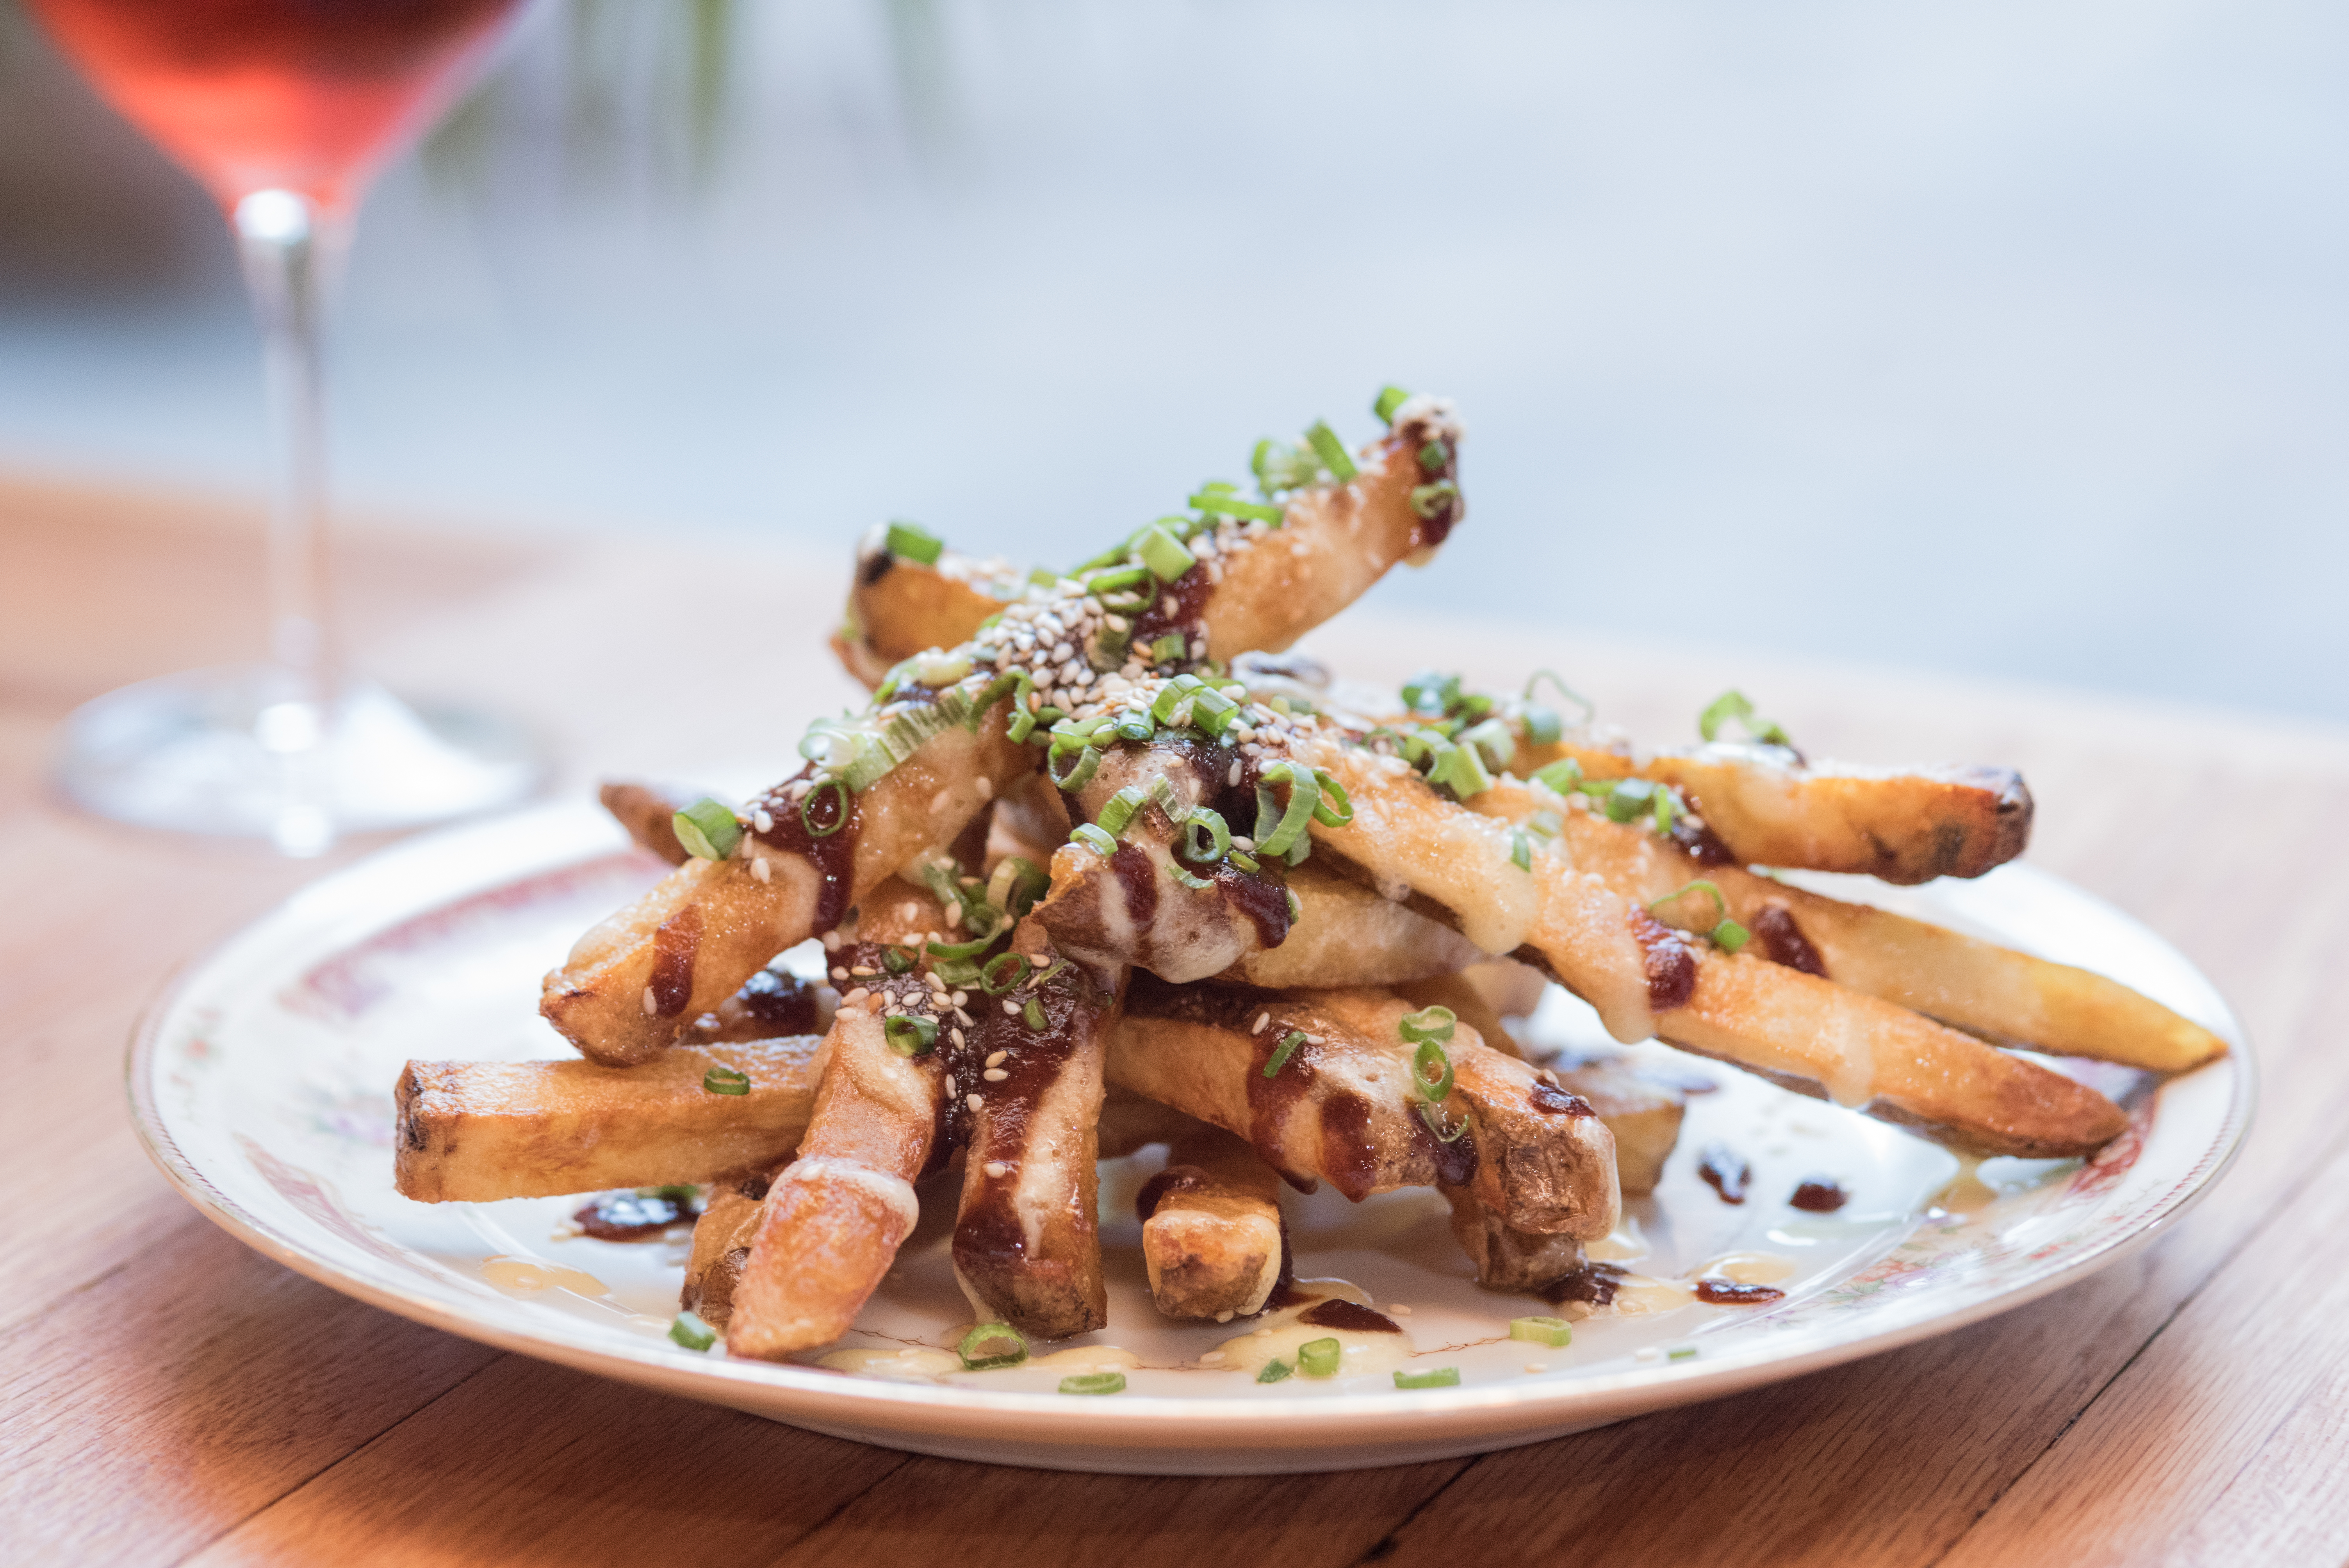 A plate of fries with scallions and sauce.